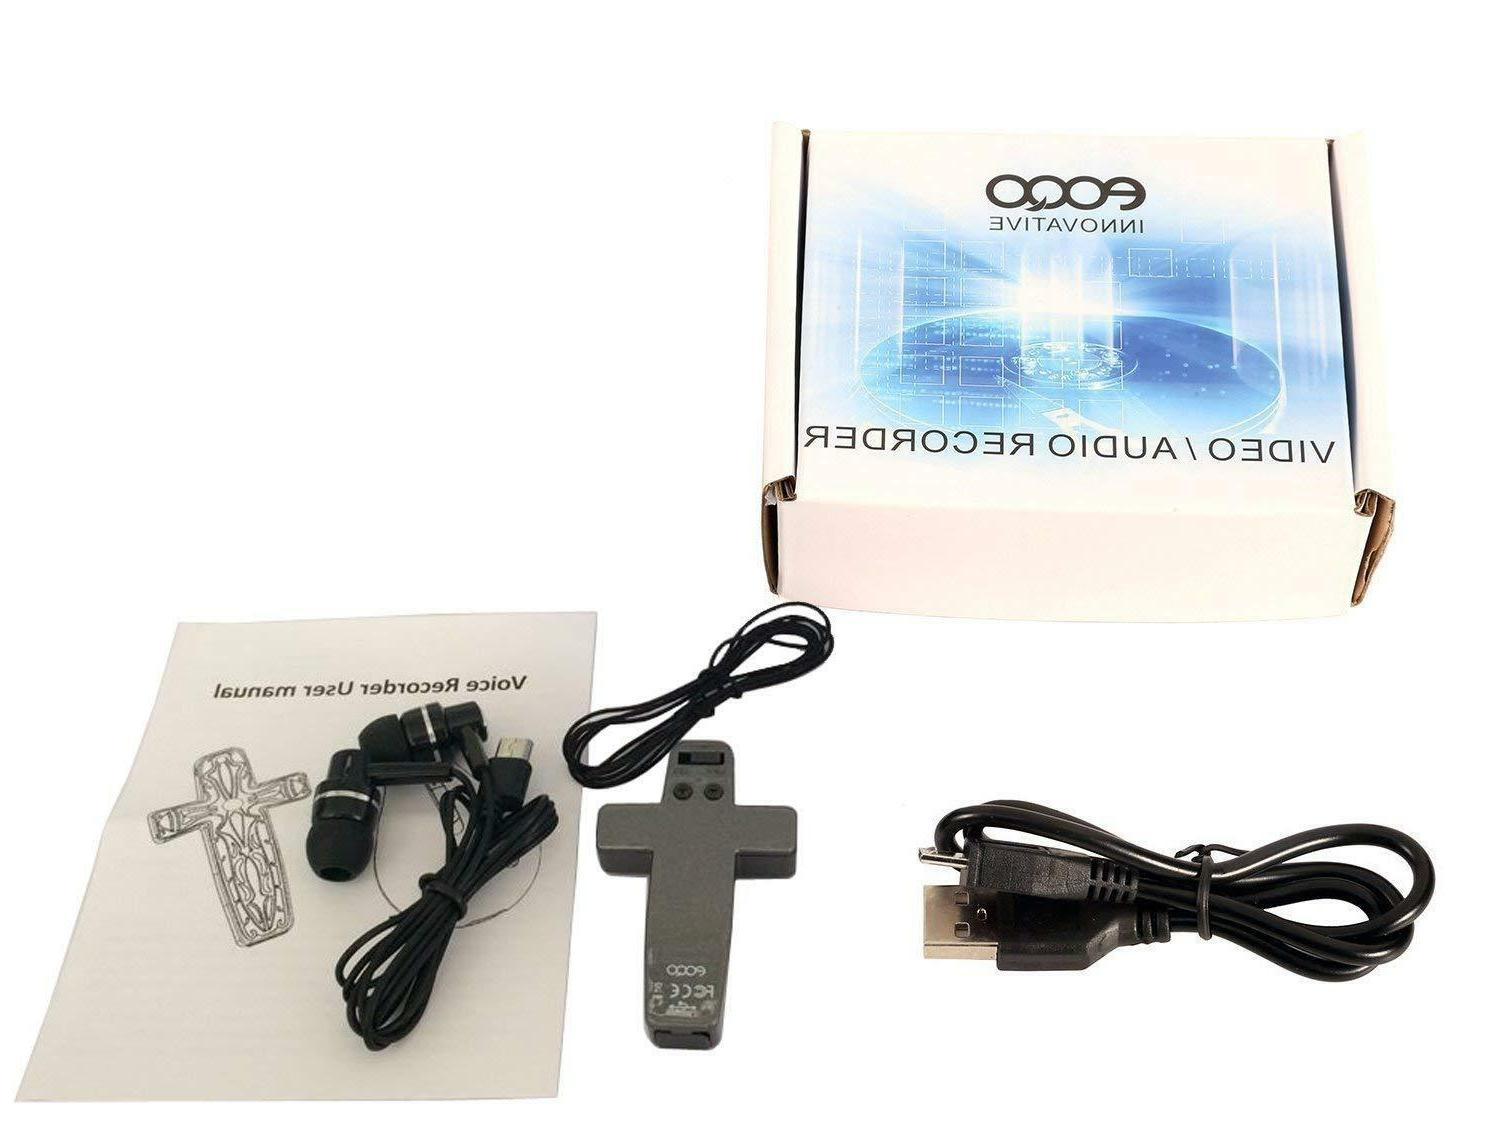 BOOCOSA Model: VR-002 / Multifunction Voice Recorder w/ Ear